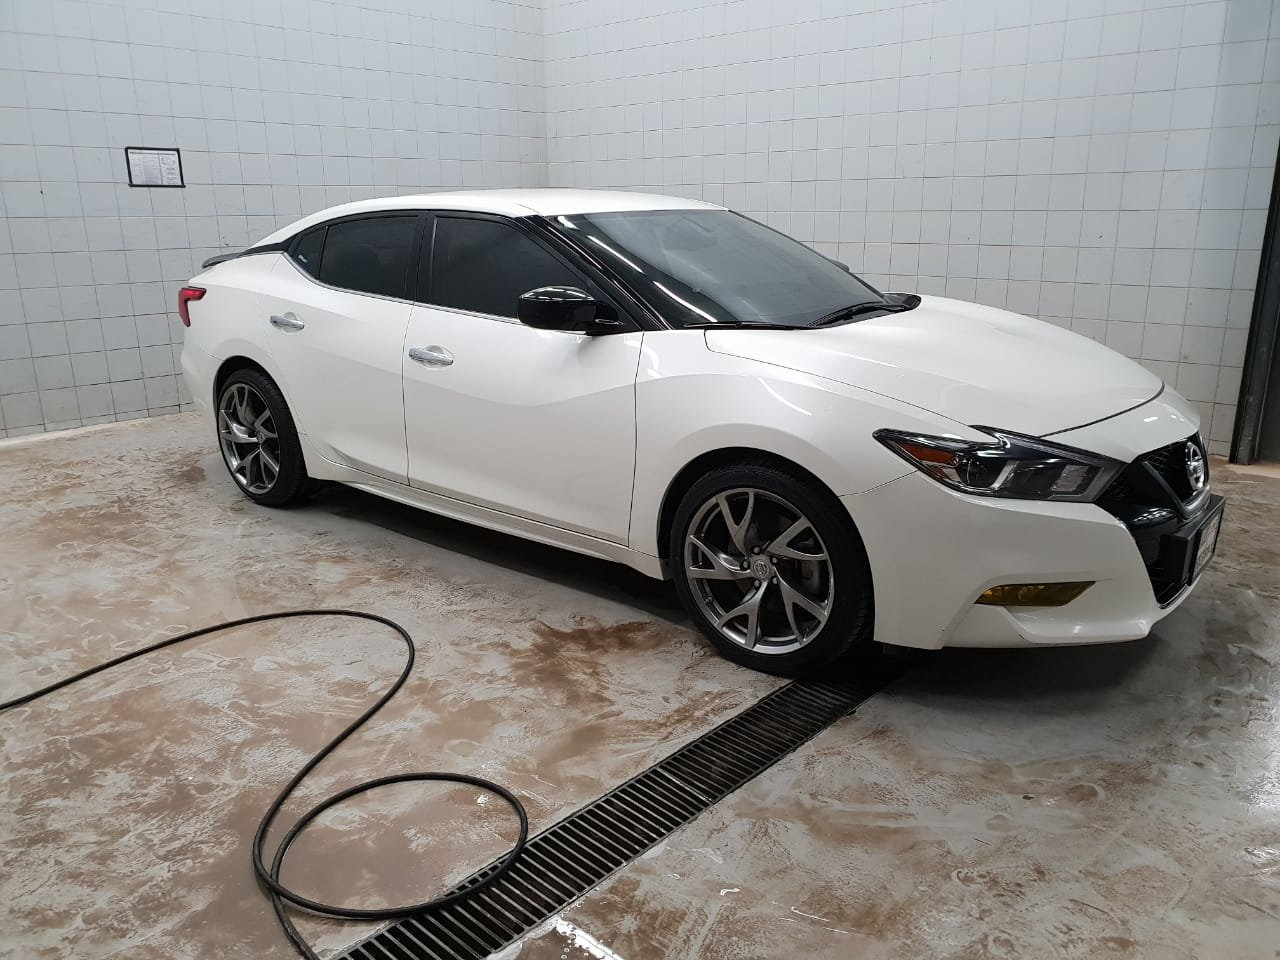 2016 8thgen Nissan Maxima with 370z Wheels